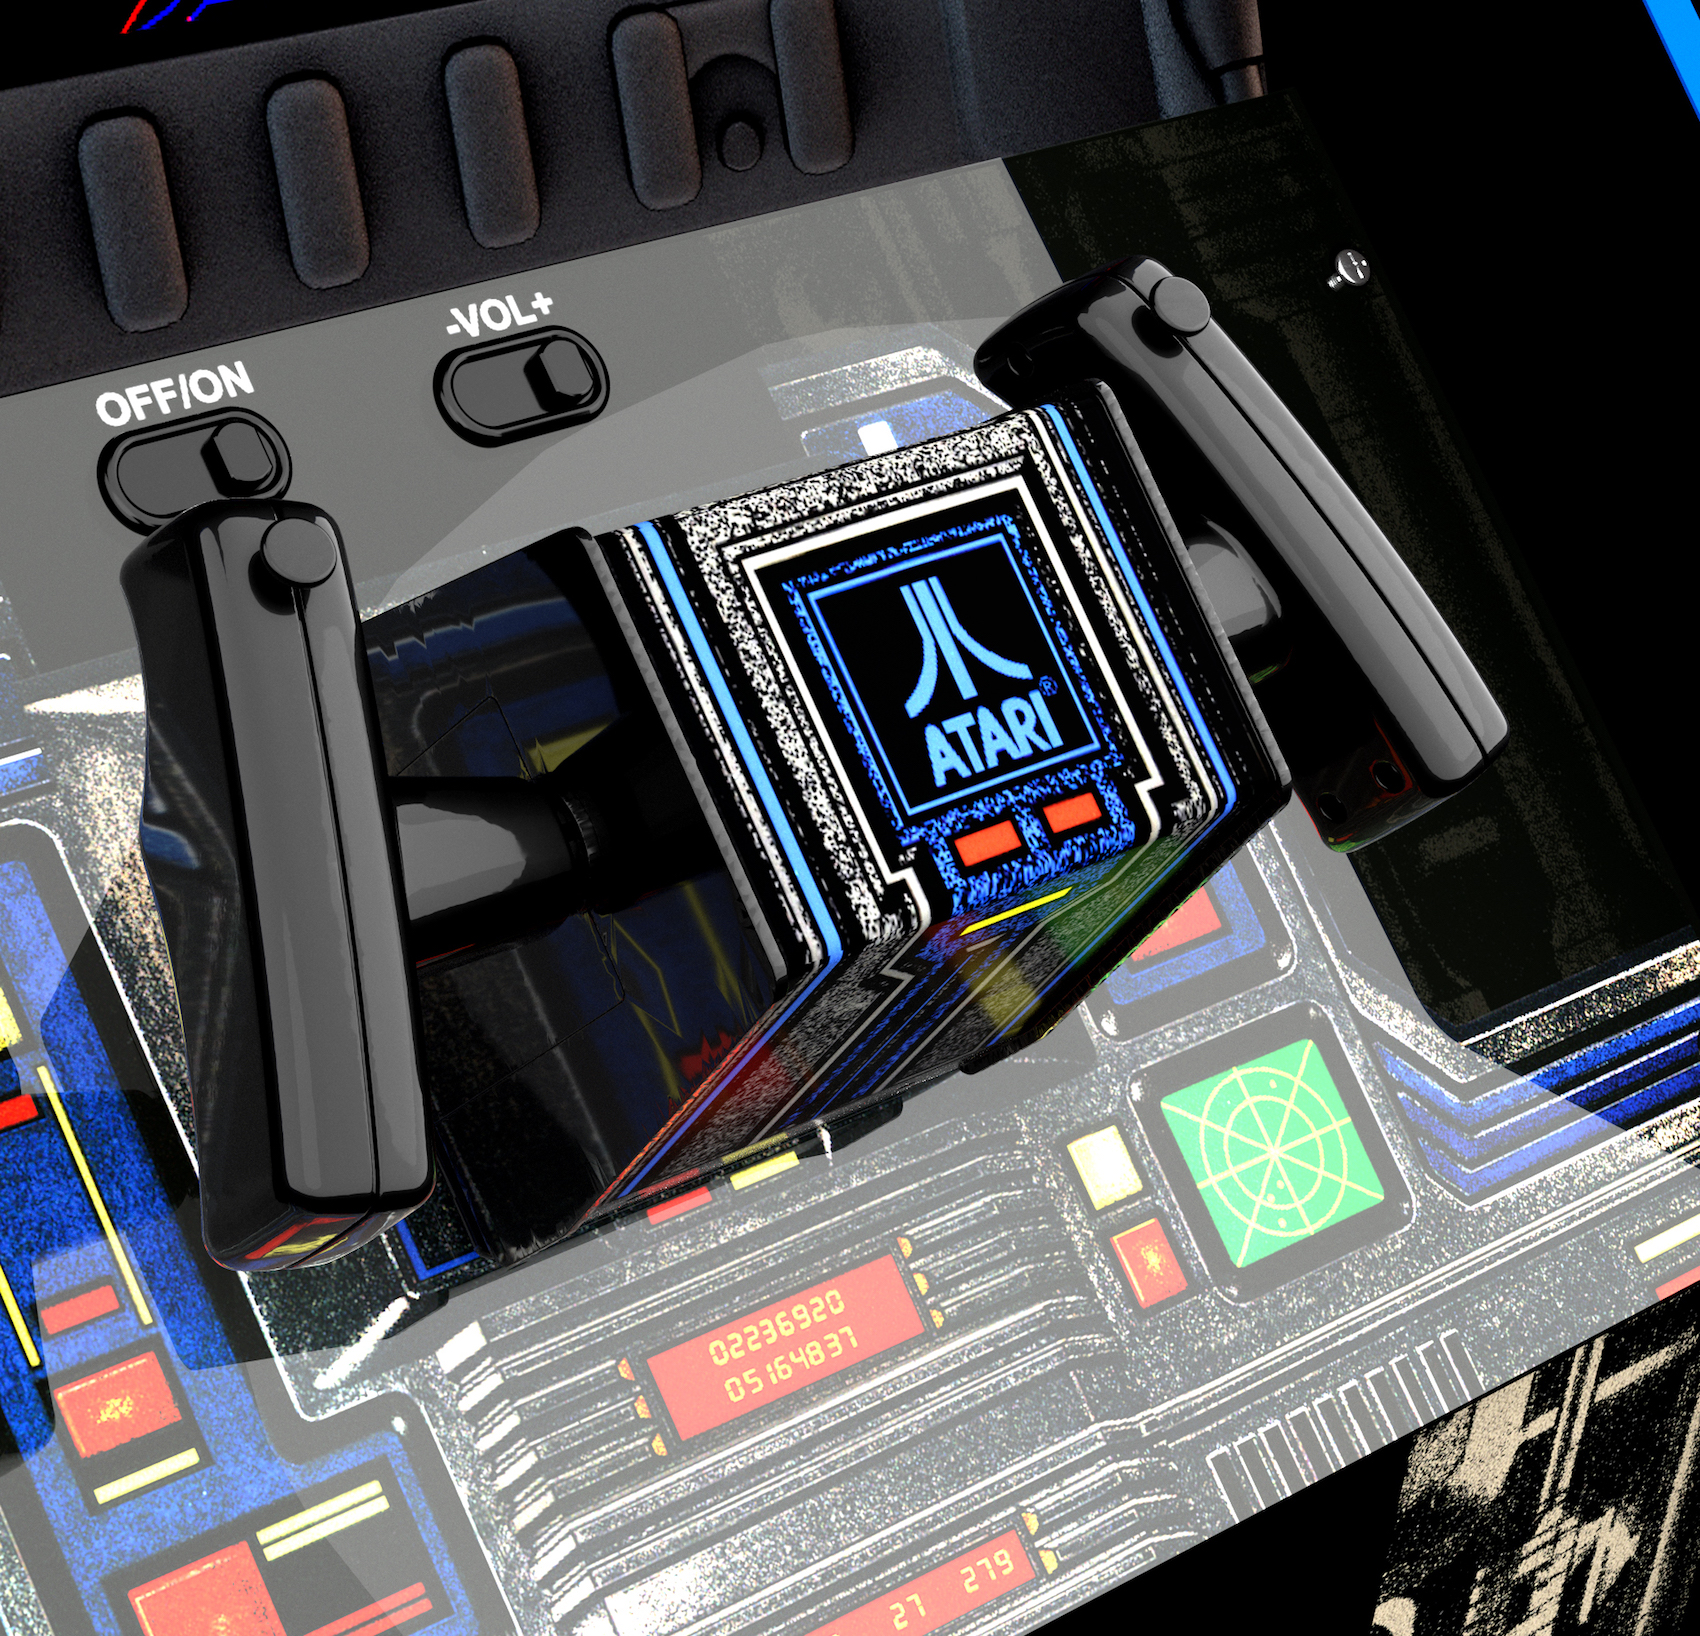 Star Wars Home Arcade Game Arcade1Up Preview